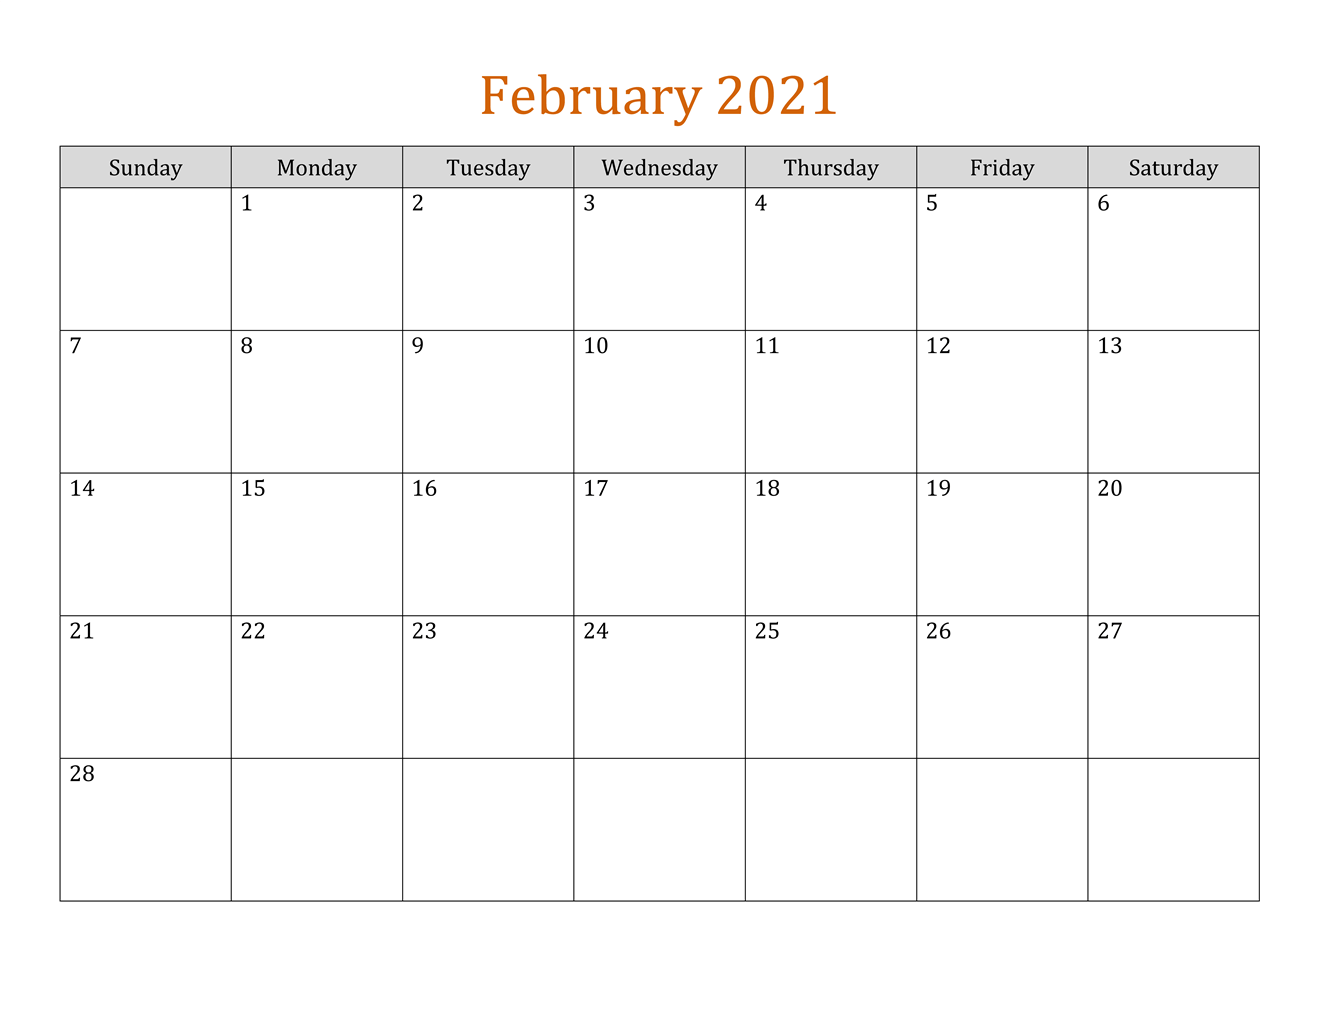 February 2021 Fillable Calendar